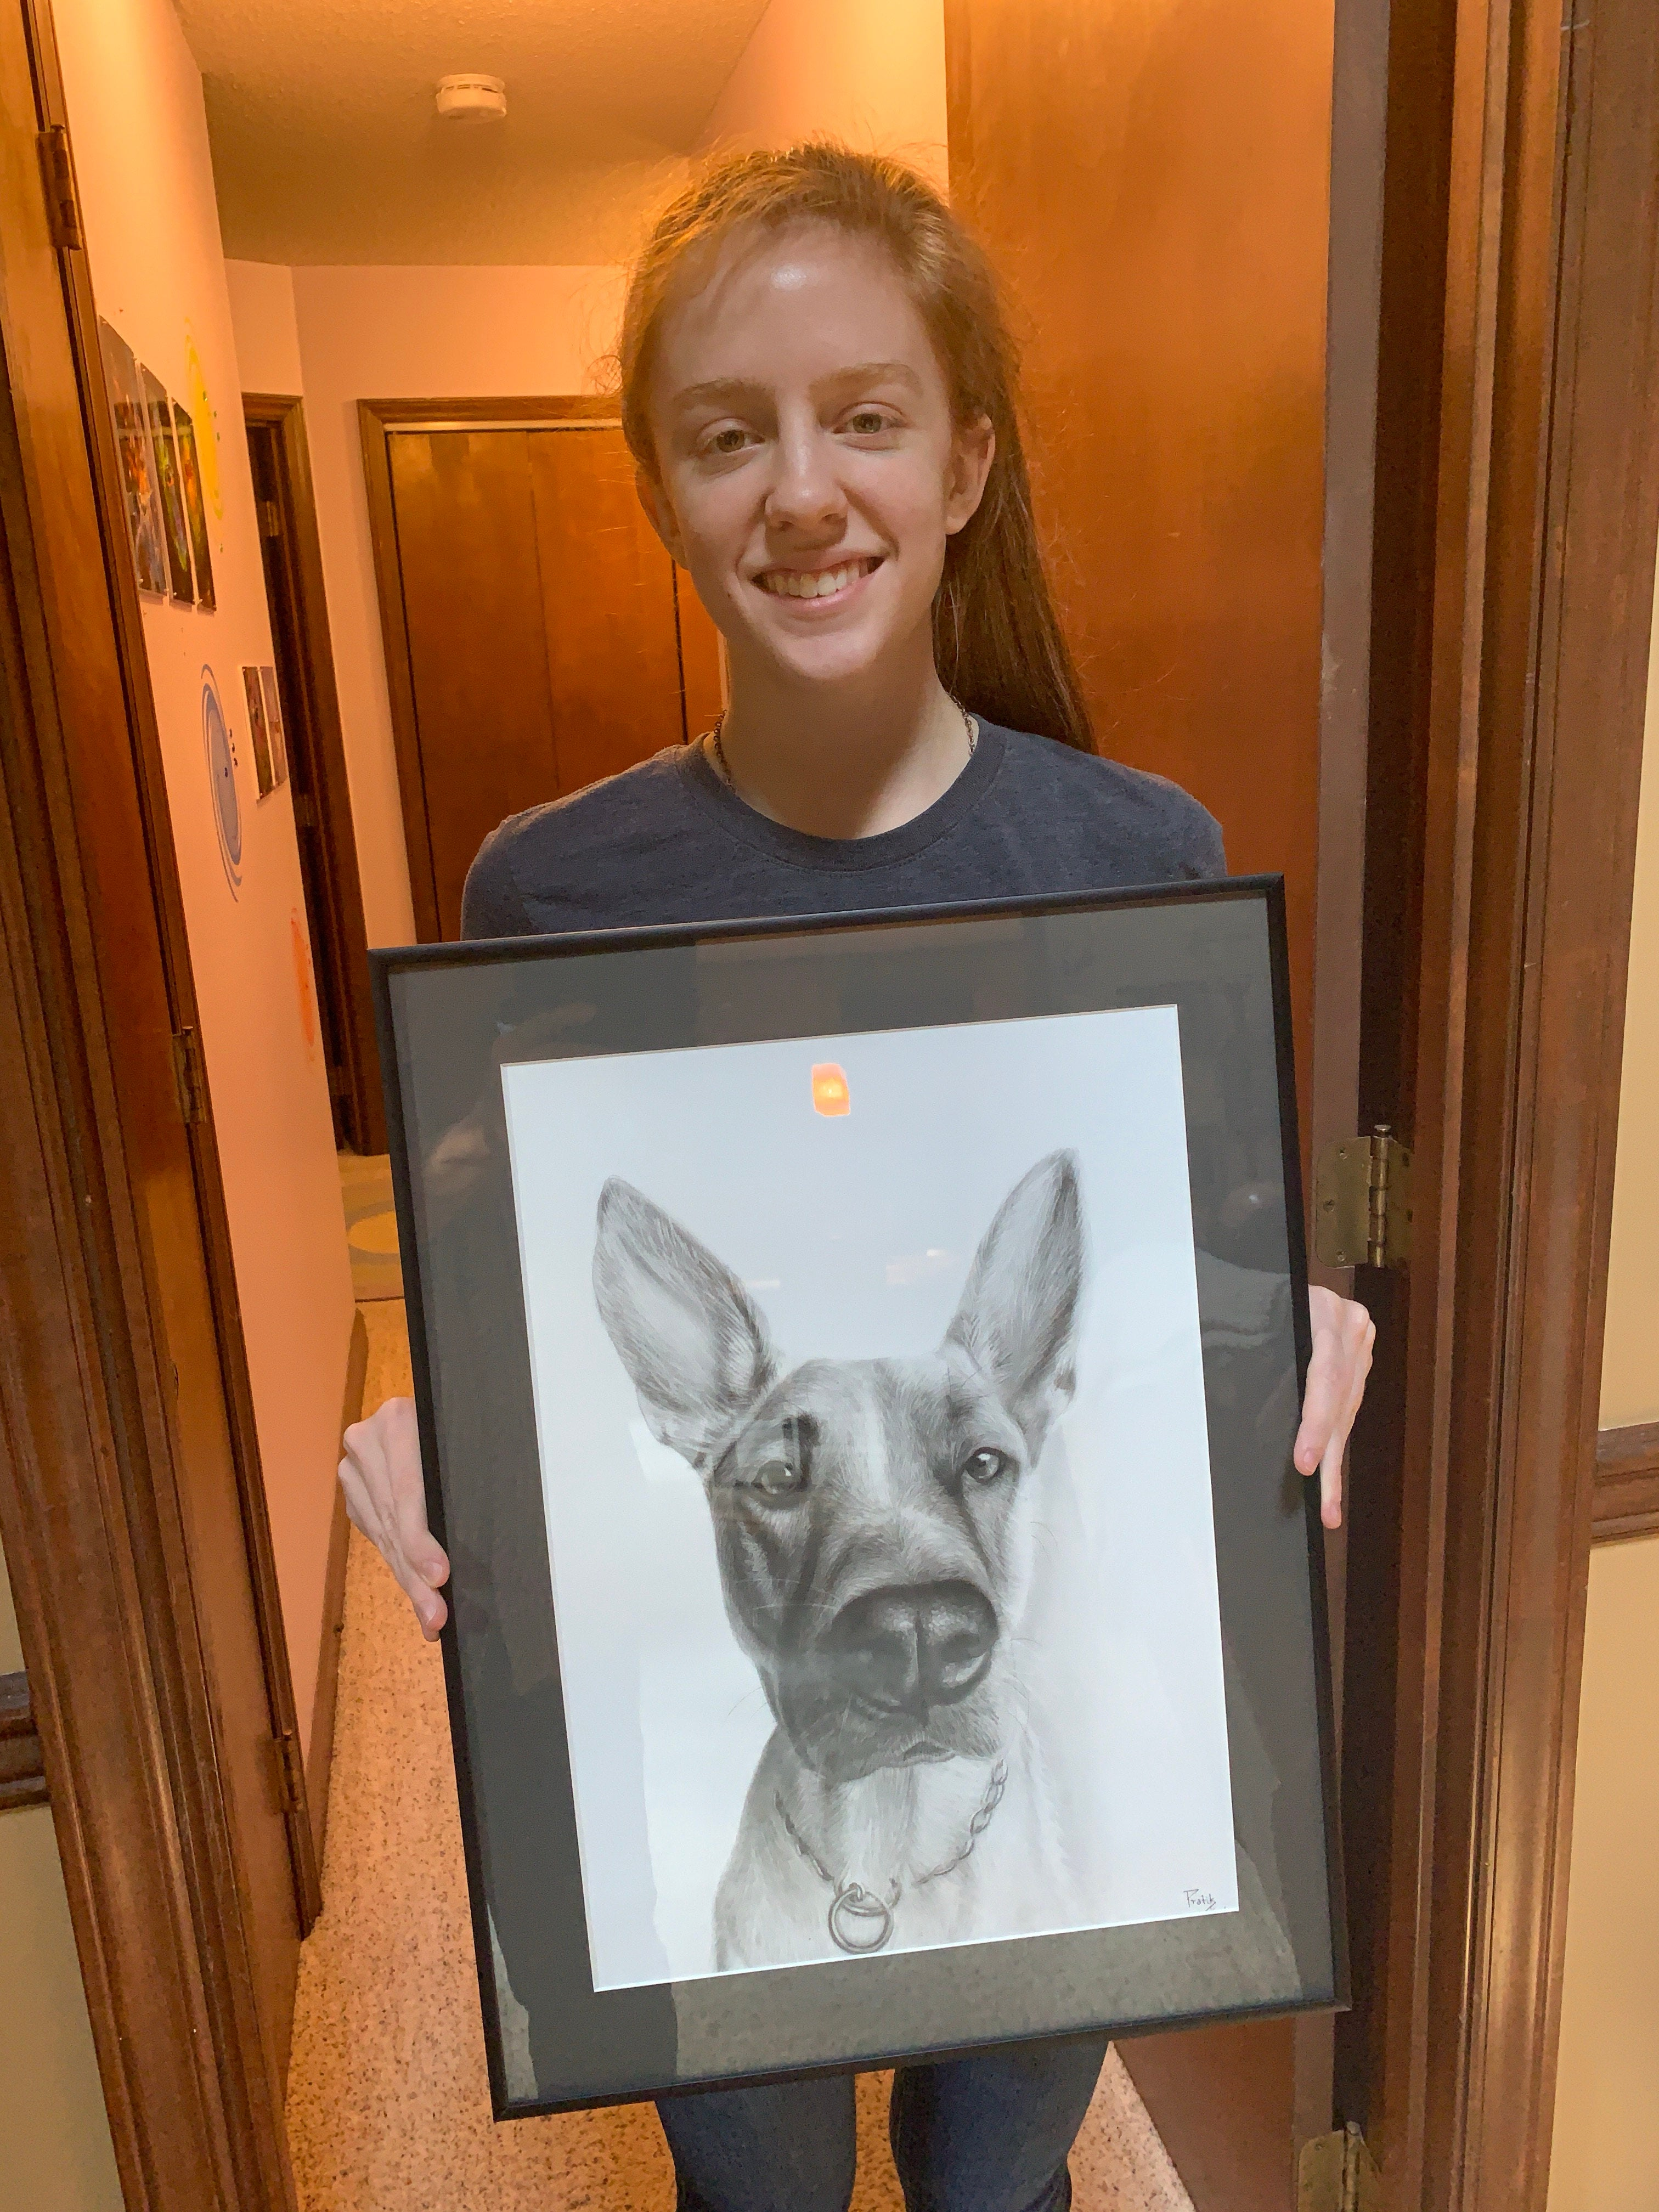 Get 25% OFF on All Hand-Painted Portraits